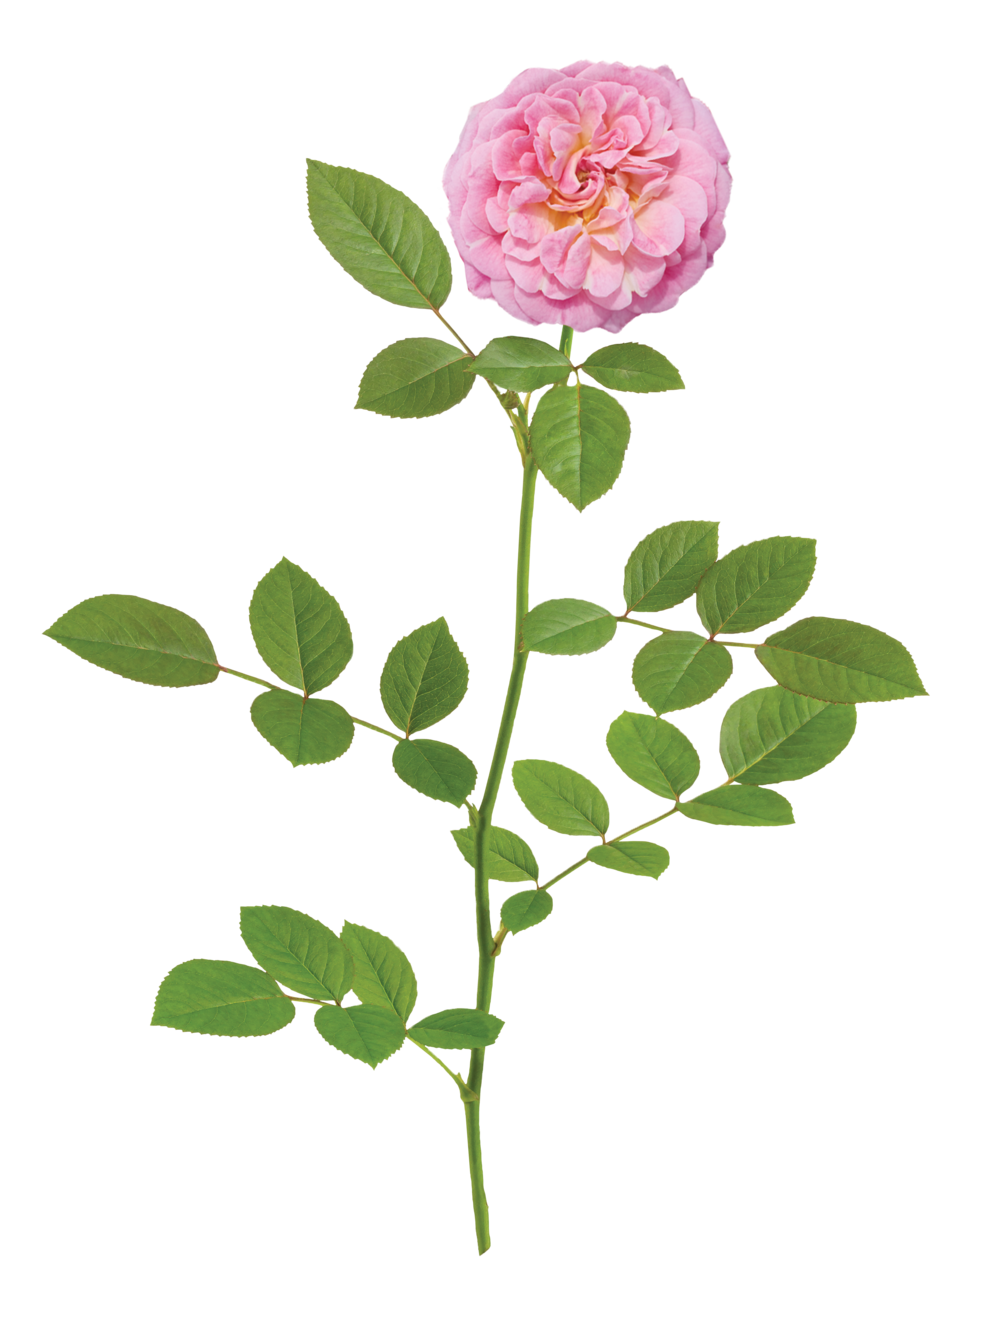 The Sweet Drift® Rose - 'Meiswetdom' PP 21,612Sweet Drift® forms full clusters of sweet pink blooms from mid-spring to the first hard freeze of late fall. No cottage garden is complete without the charming romance of Sweet Drift.®Zones: 4–11   |   Exposure: Full sun   |   Habit: 1½'h x 2½'w